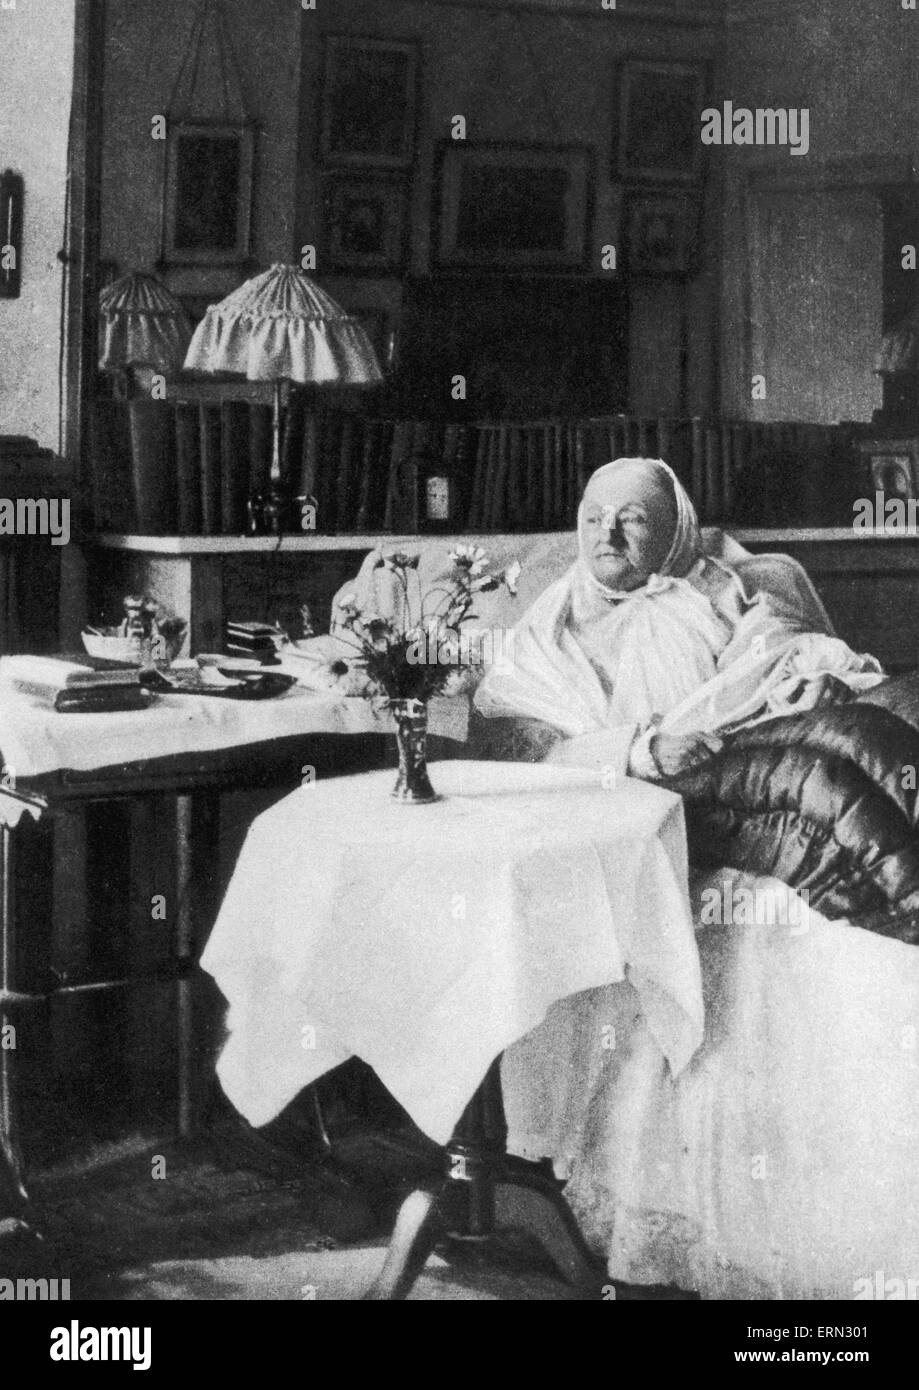 Florence Nightingale founder of modern nursing, seen here in her room in South Street Circa 1906 - Stock Image